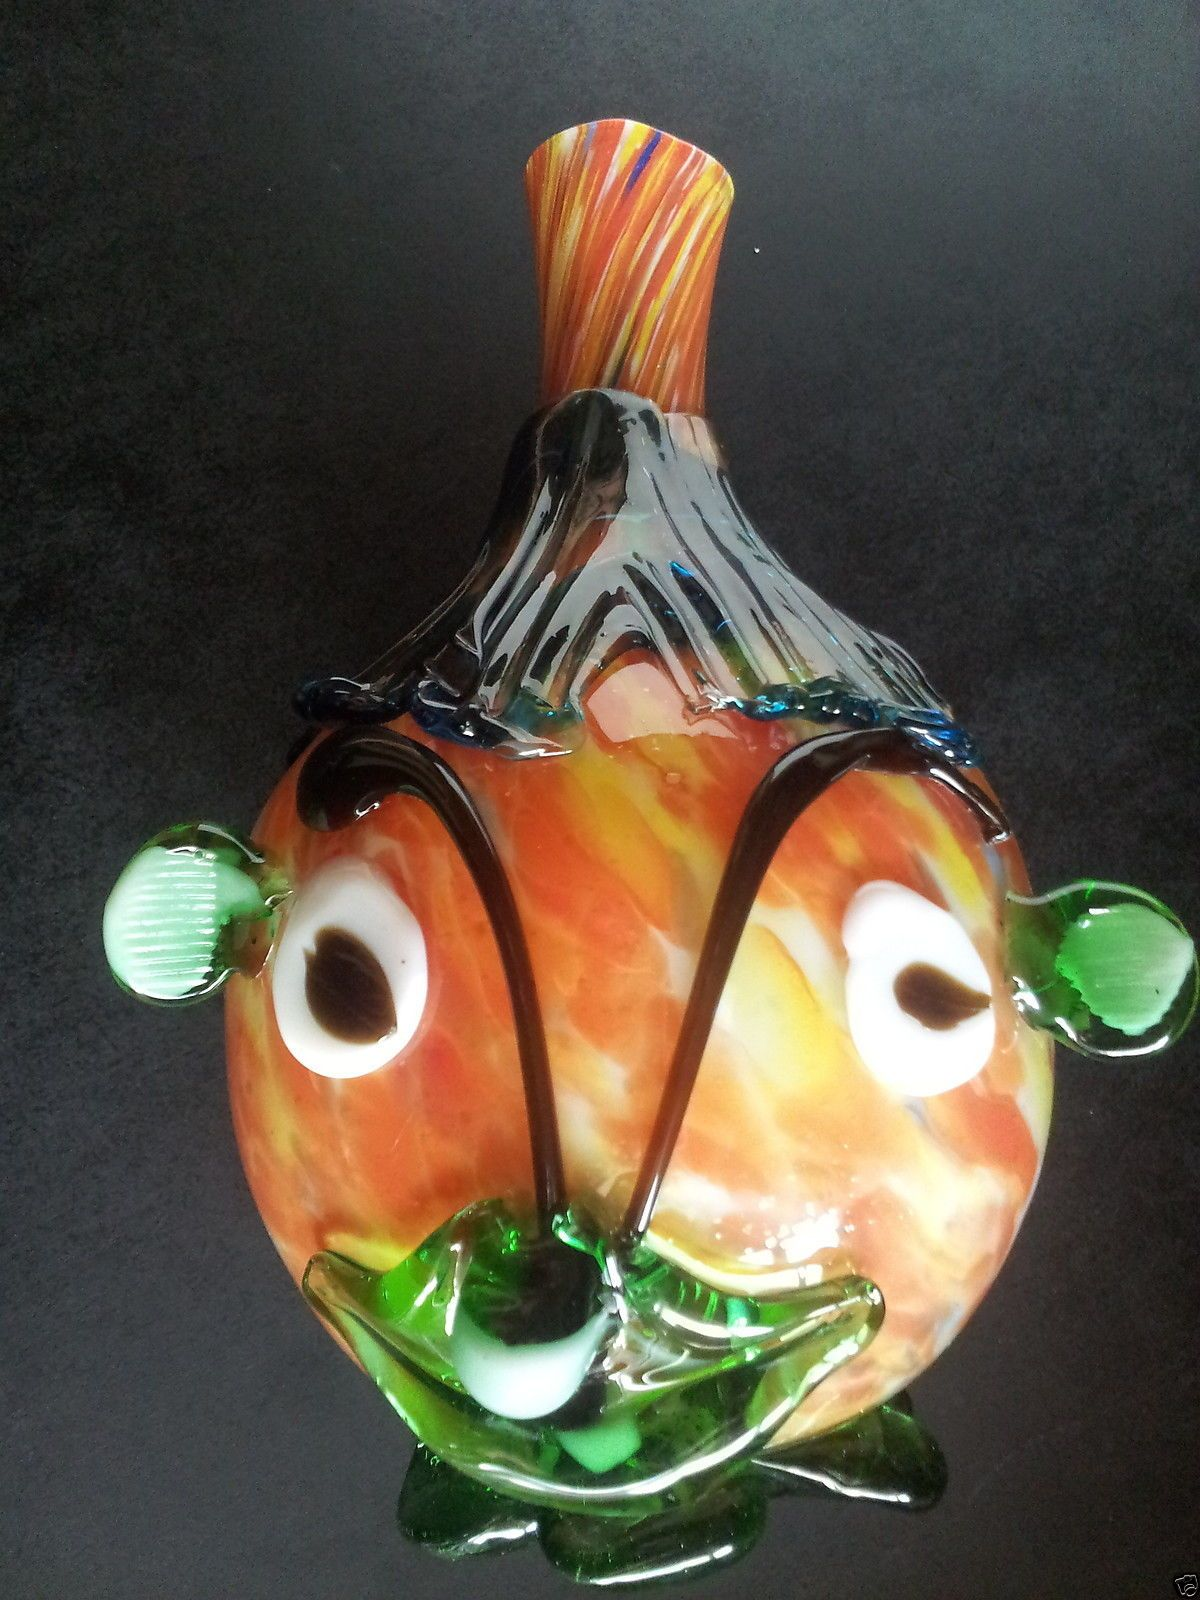 Vintage murano hand blown glass vase jug mrs potato head fish or vintage murano hand blown glass vase jug mrs potato head fish or clown face reviewsmspy